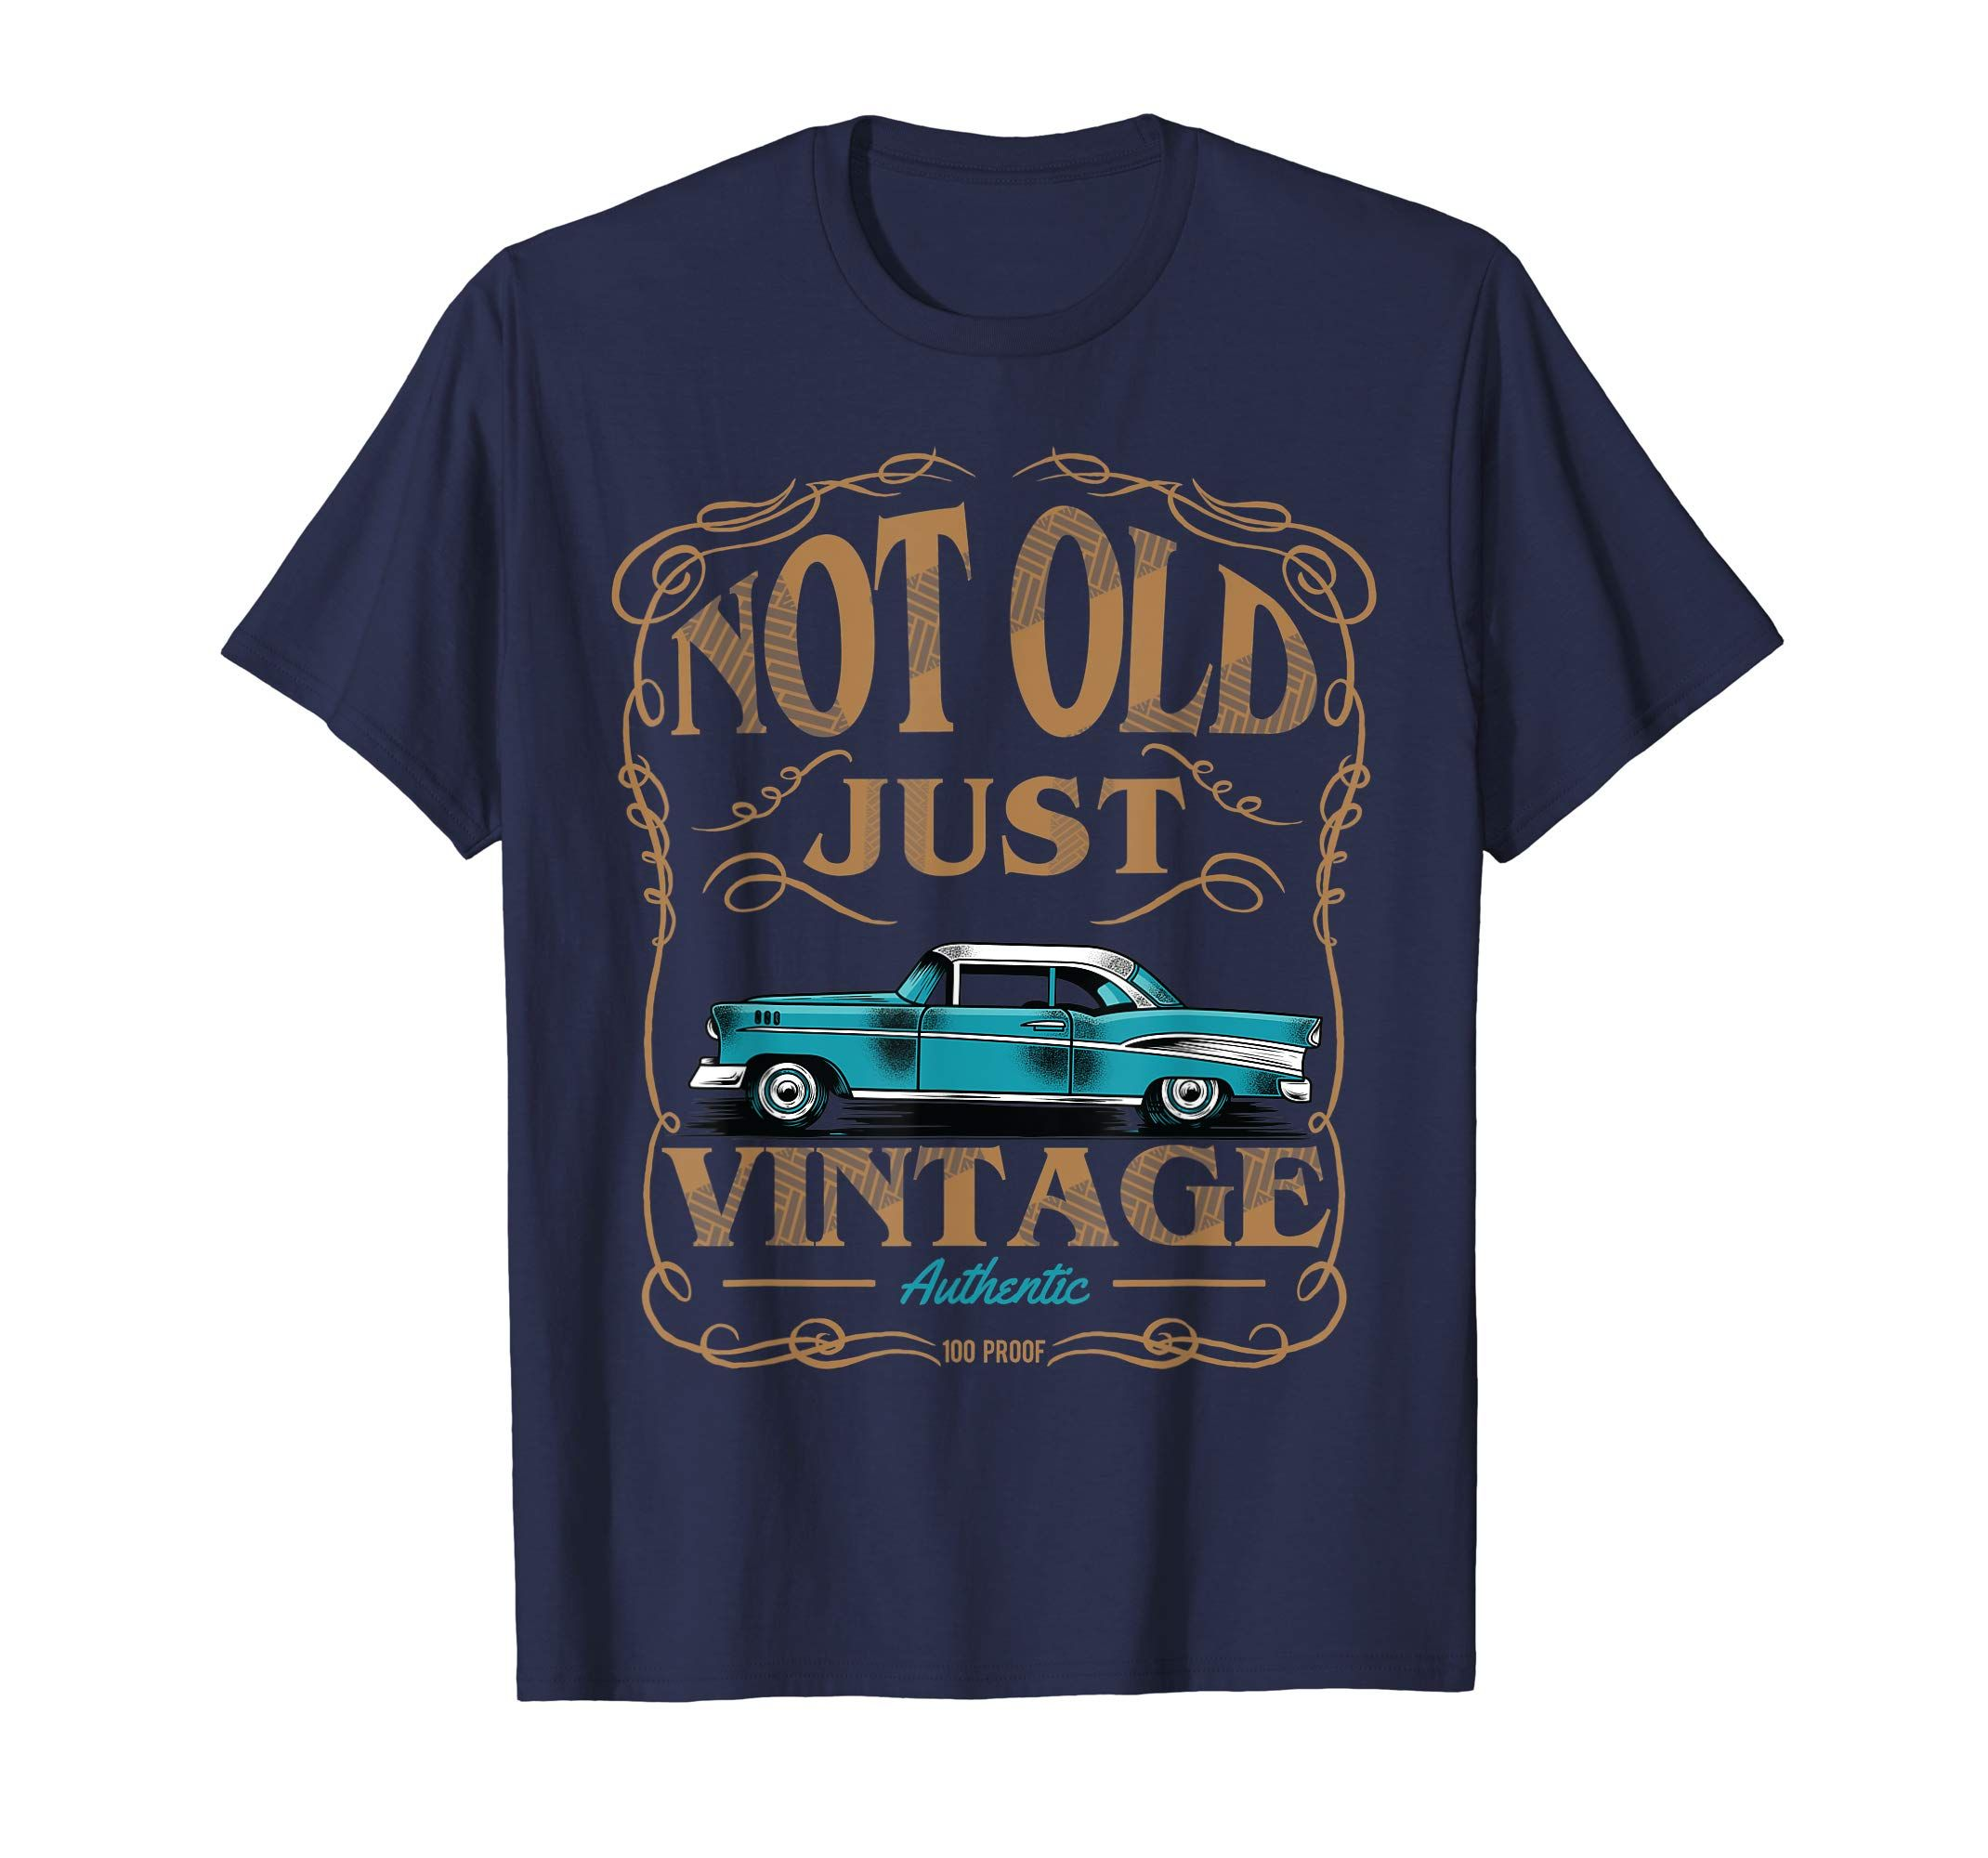 Not Old Just Vintage American Classic Car Birthday Tshirt-Yolotee